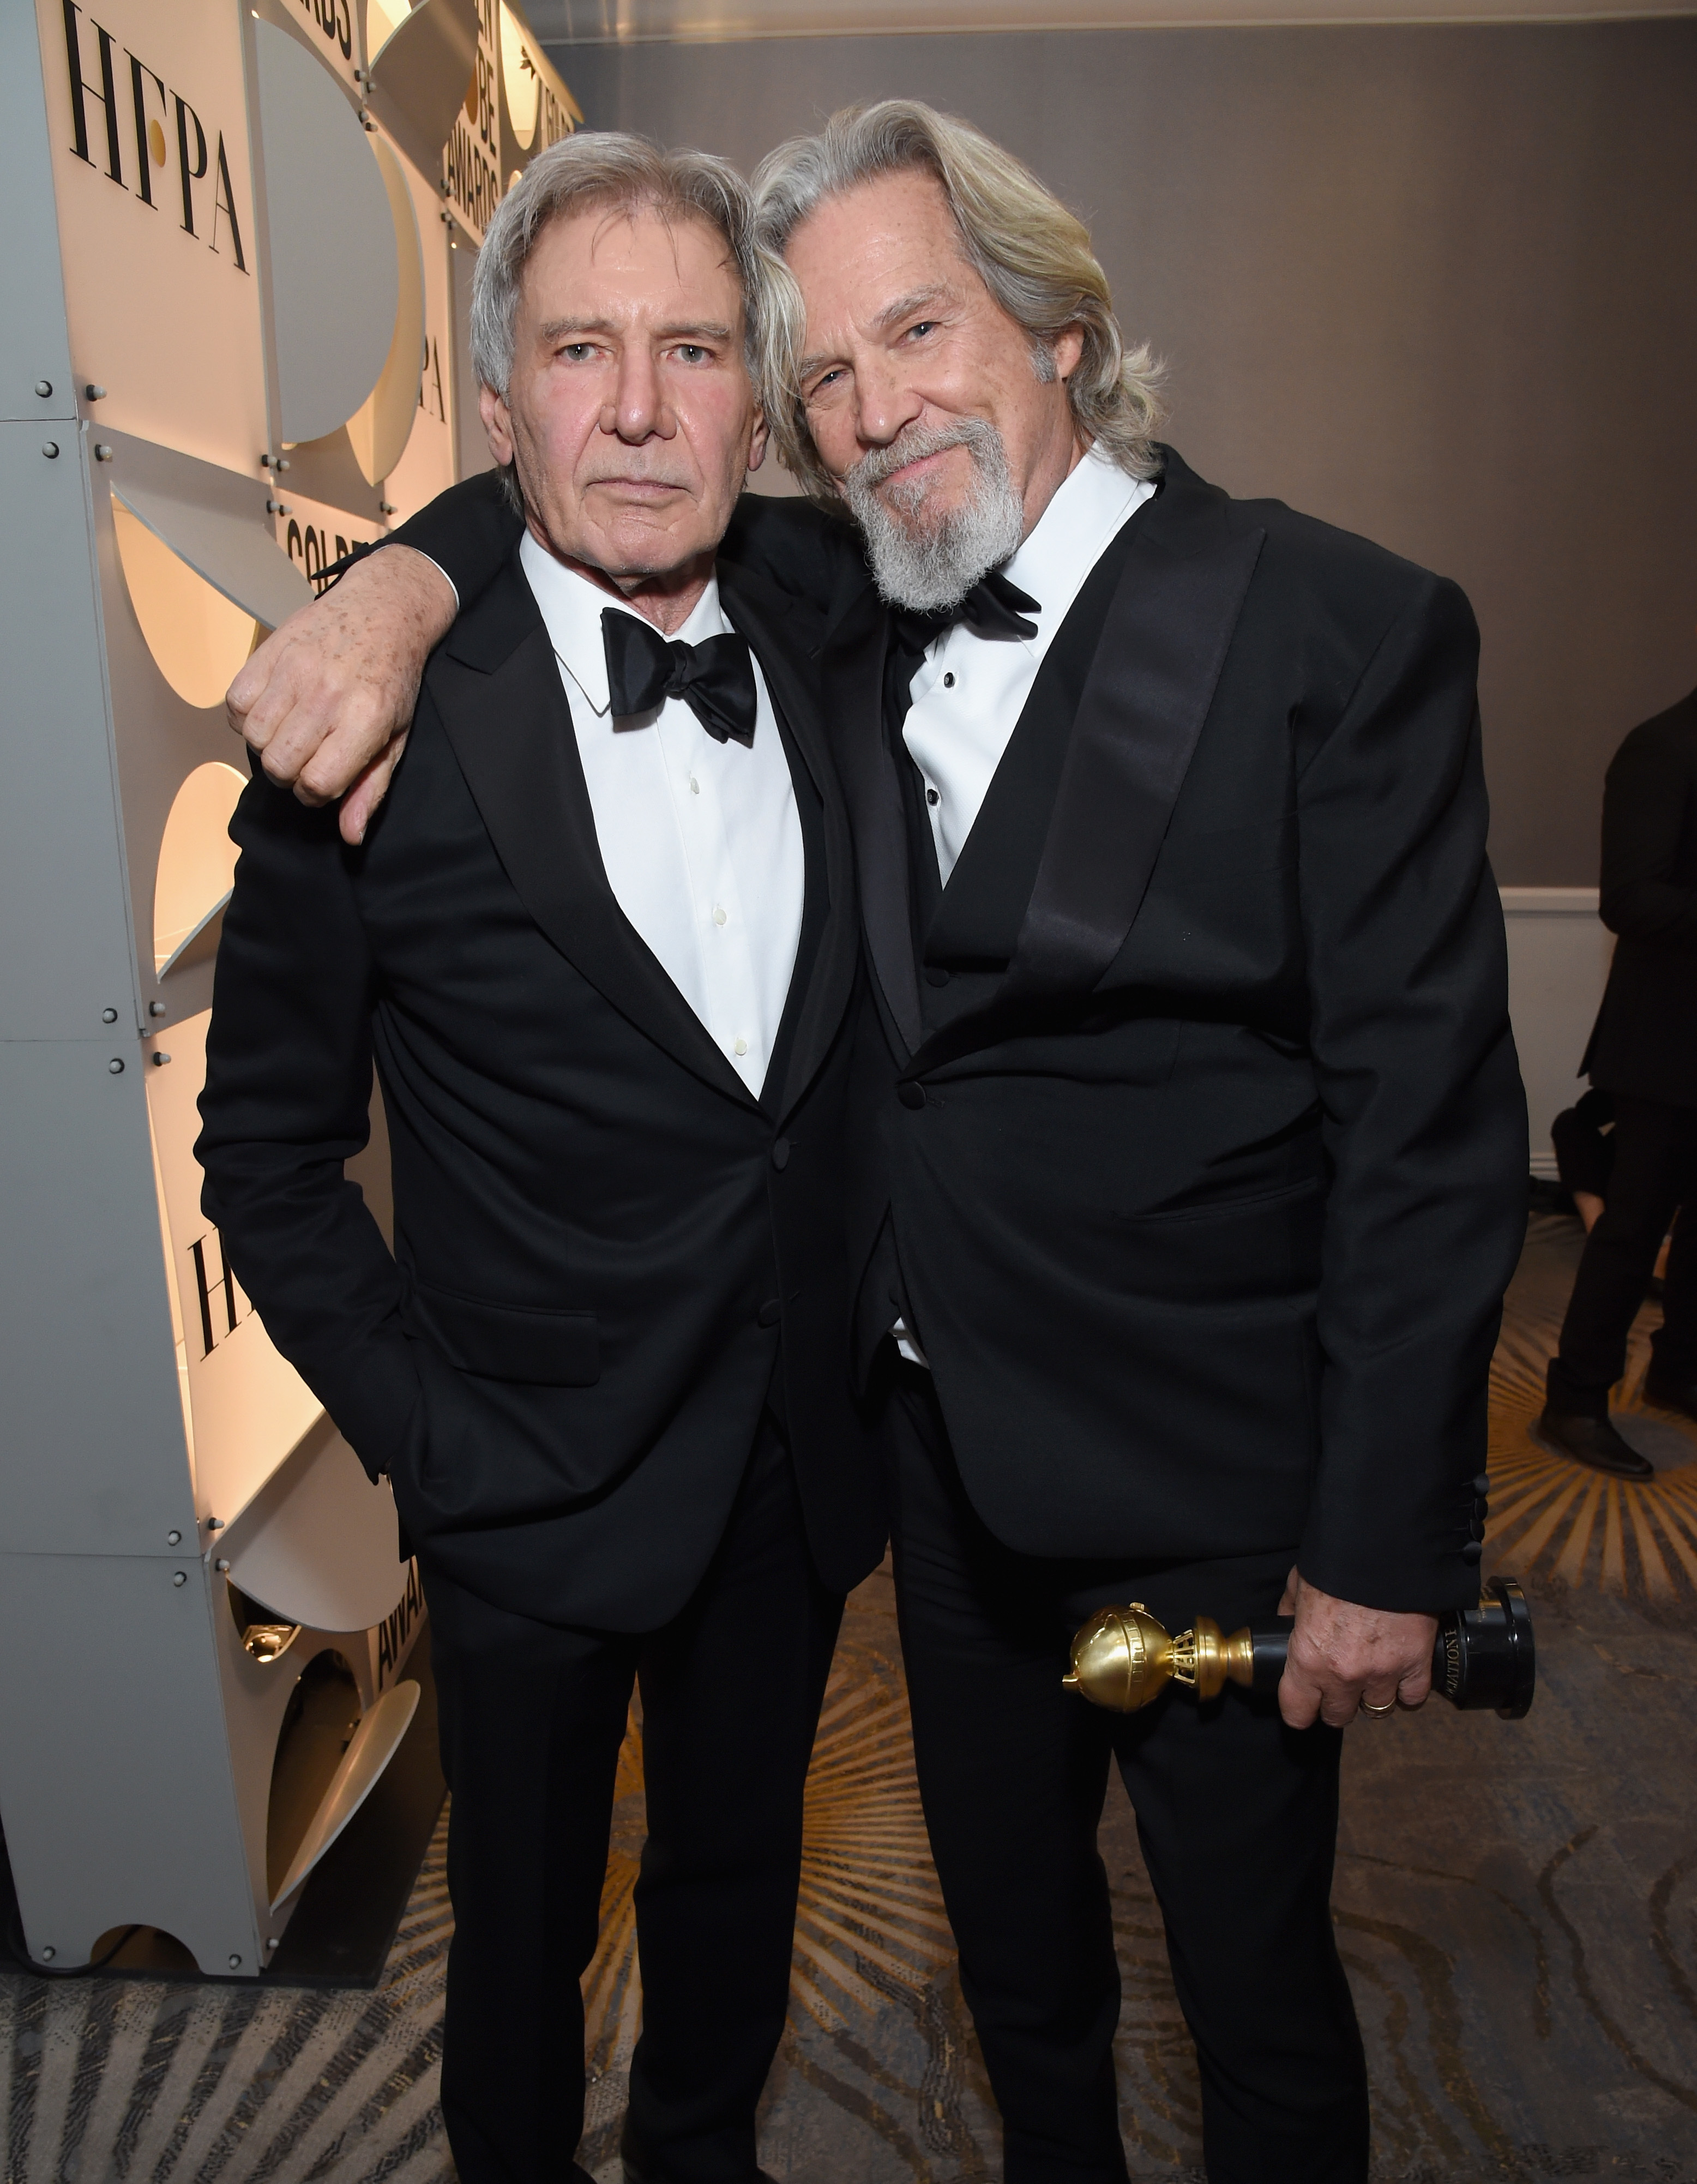 Harrison Ford and Jeff Bridges attend Moet & Chandon at The 76th Annual Golden Globe Awards at The Beverly Hilton Hotel in Beverly Hills, California on Jan. 6, 2019.